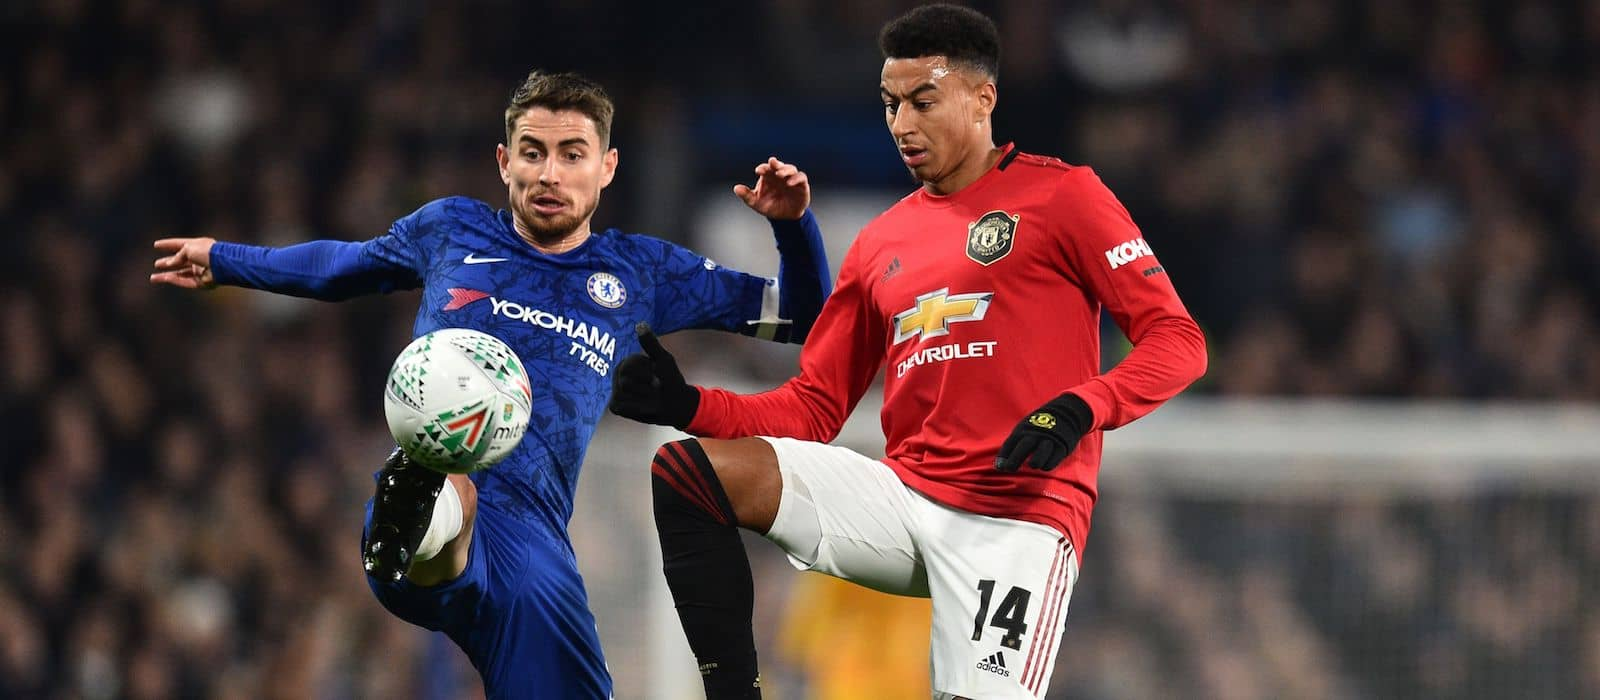 Jesse Lingard planning move to Italy as fans rejoice